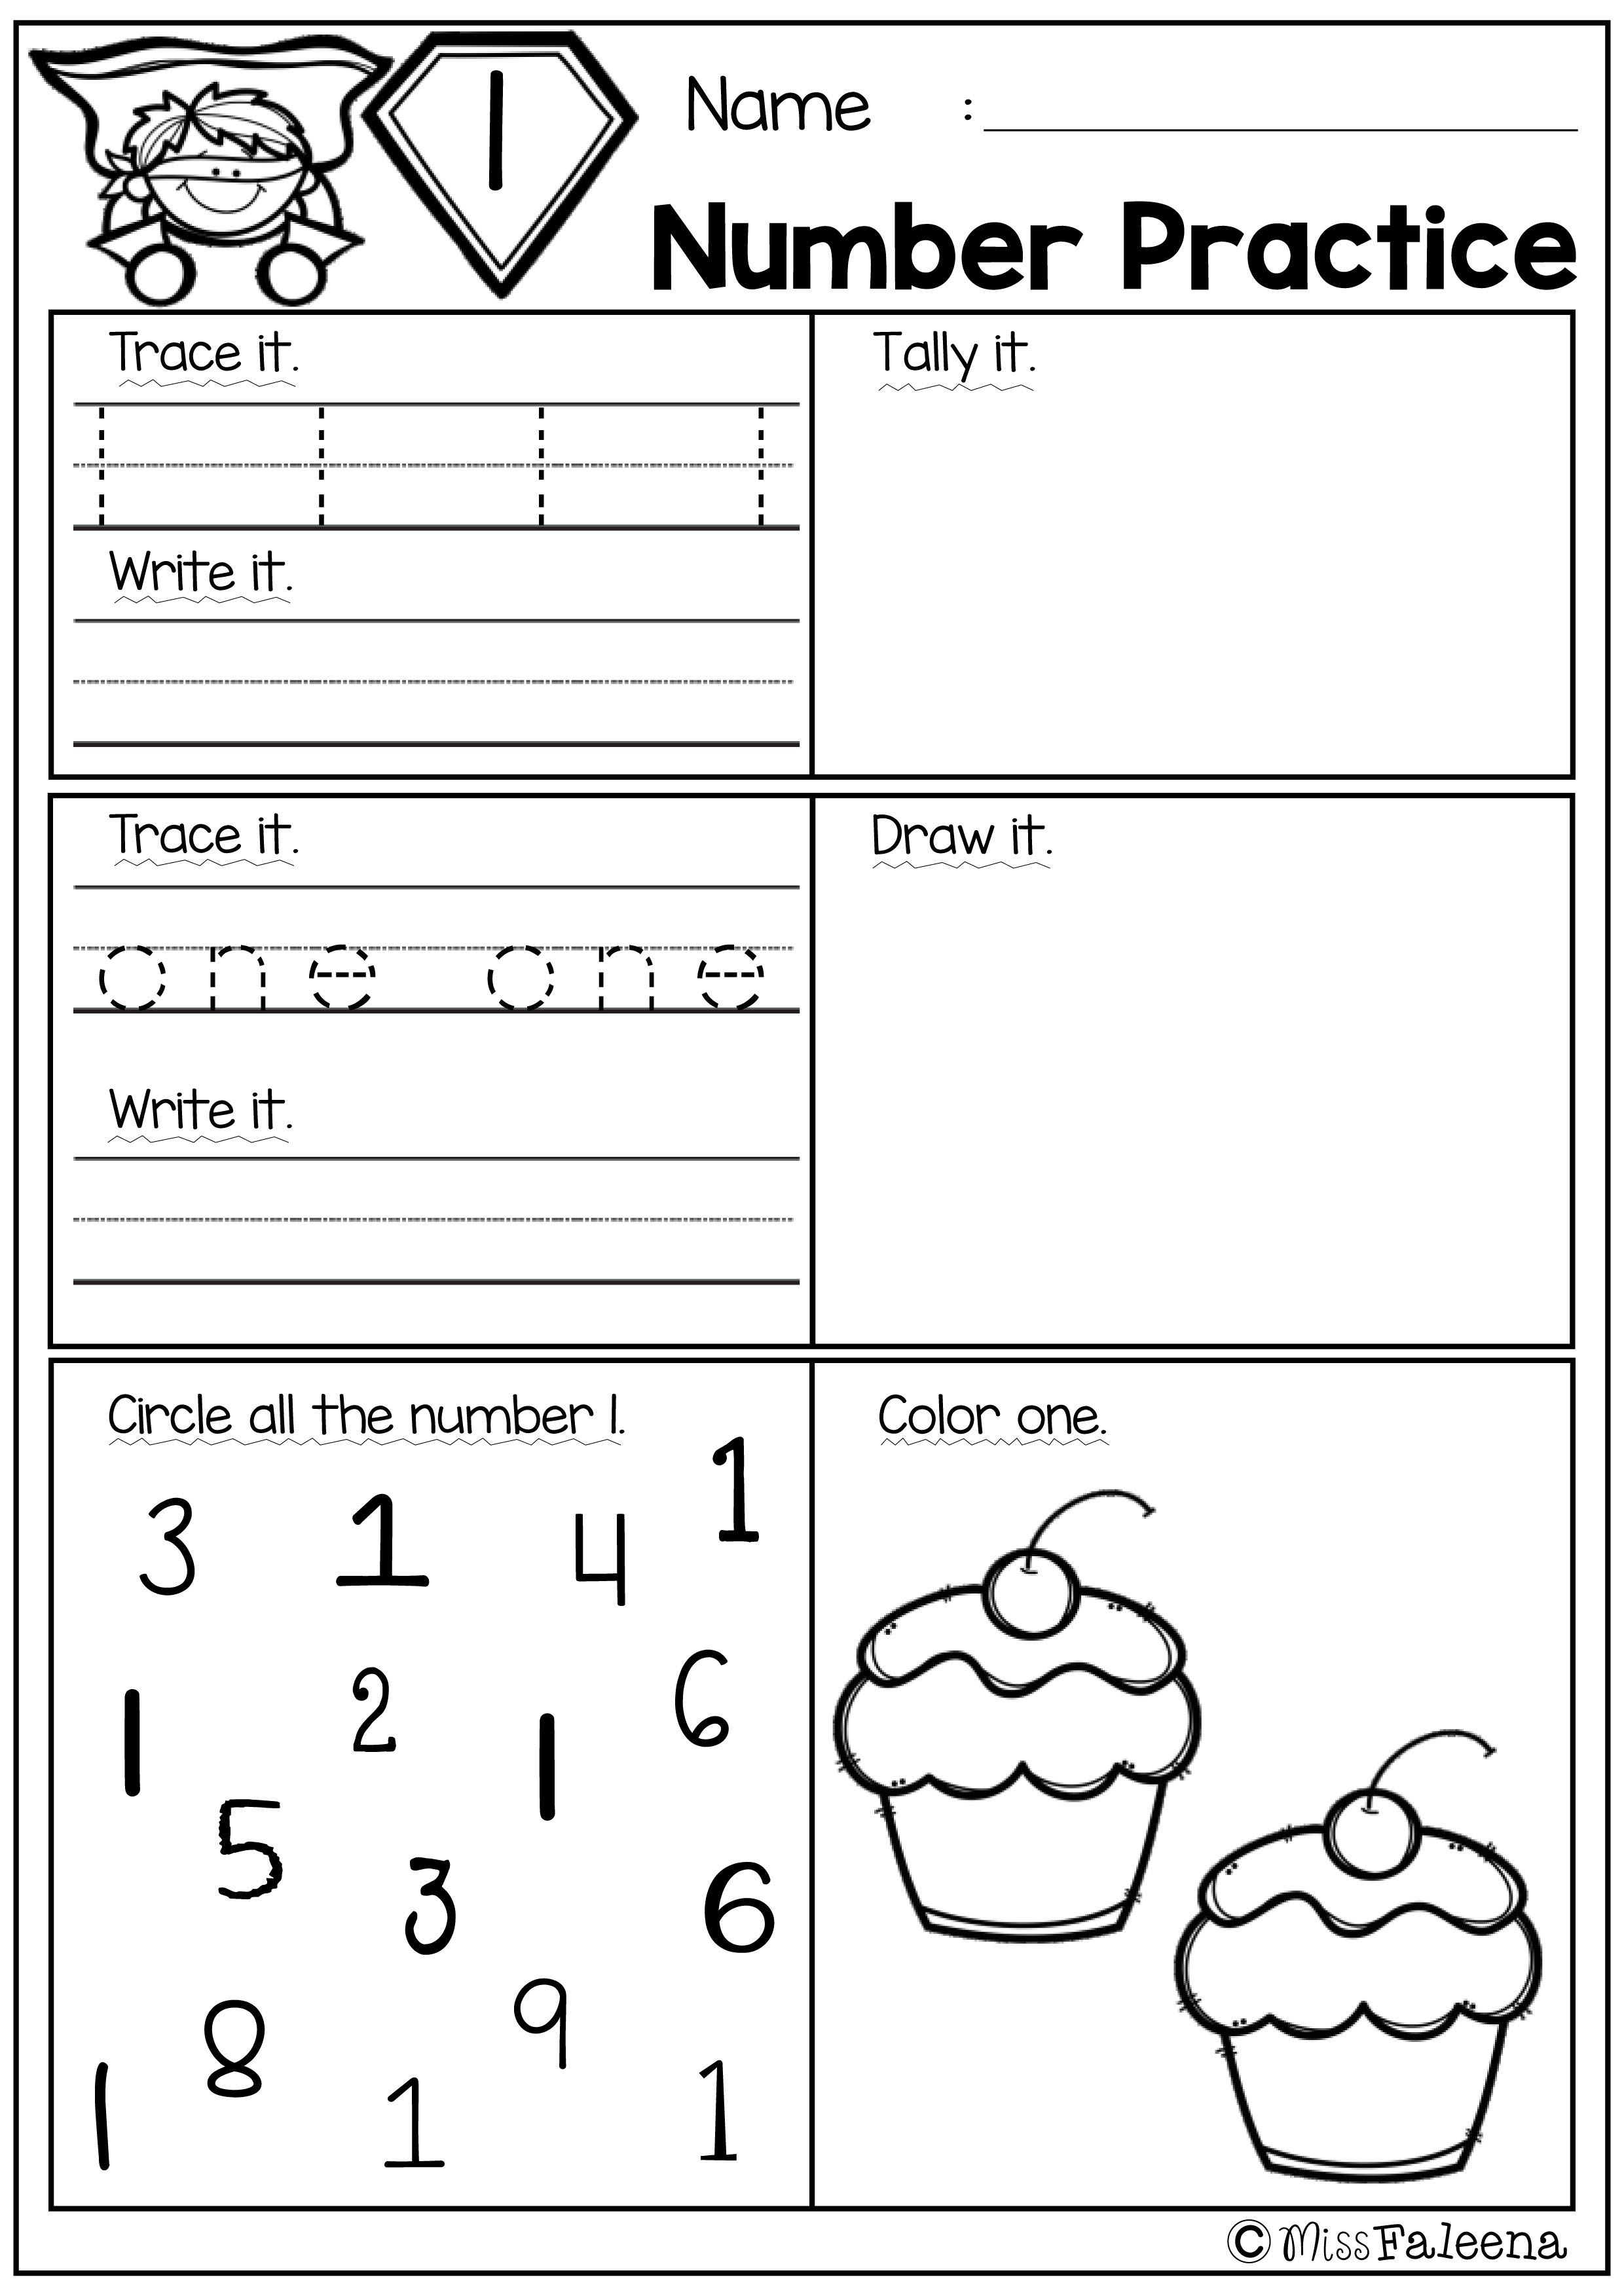 Free Number Practice With Images Kindergarten Math Worksheets